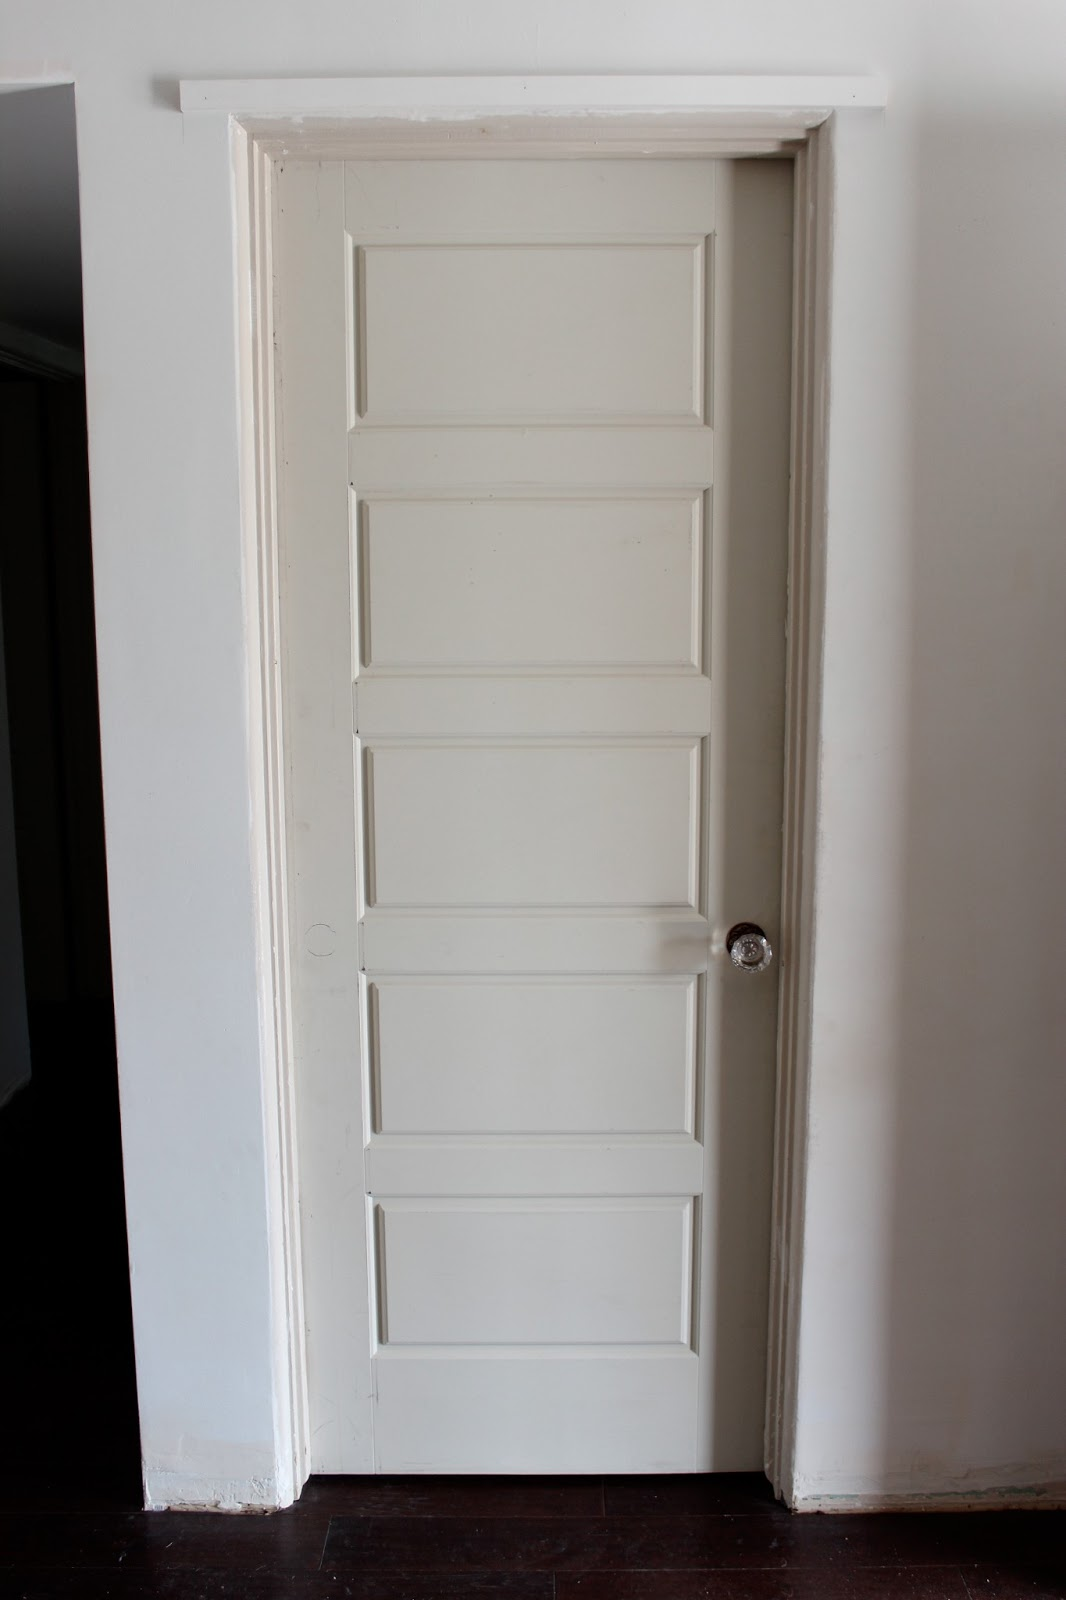 Le Meilleur Diy Door Trim Tutorial Dream Book Design Ce Mois Ci